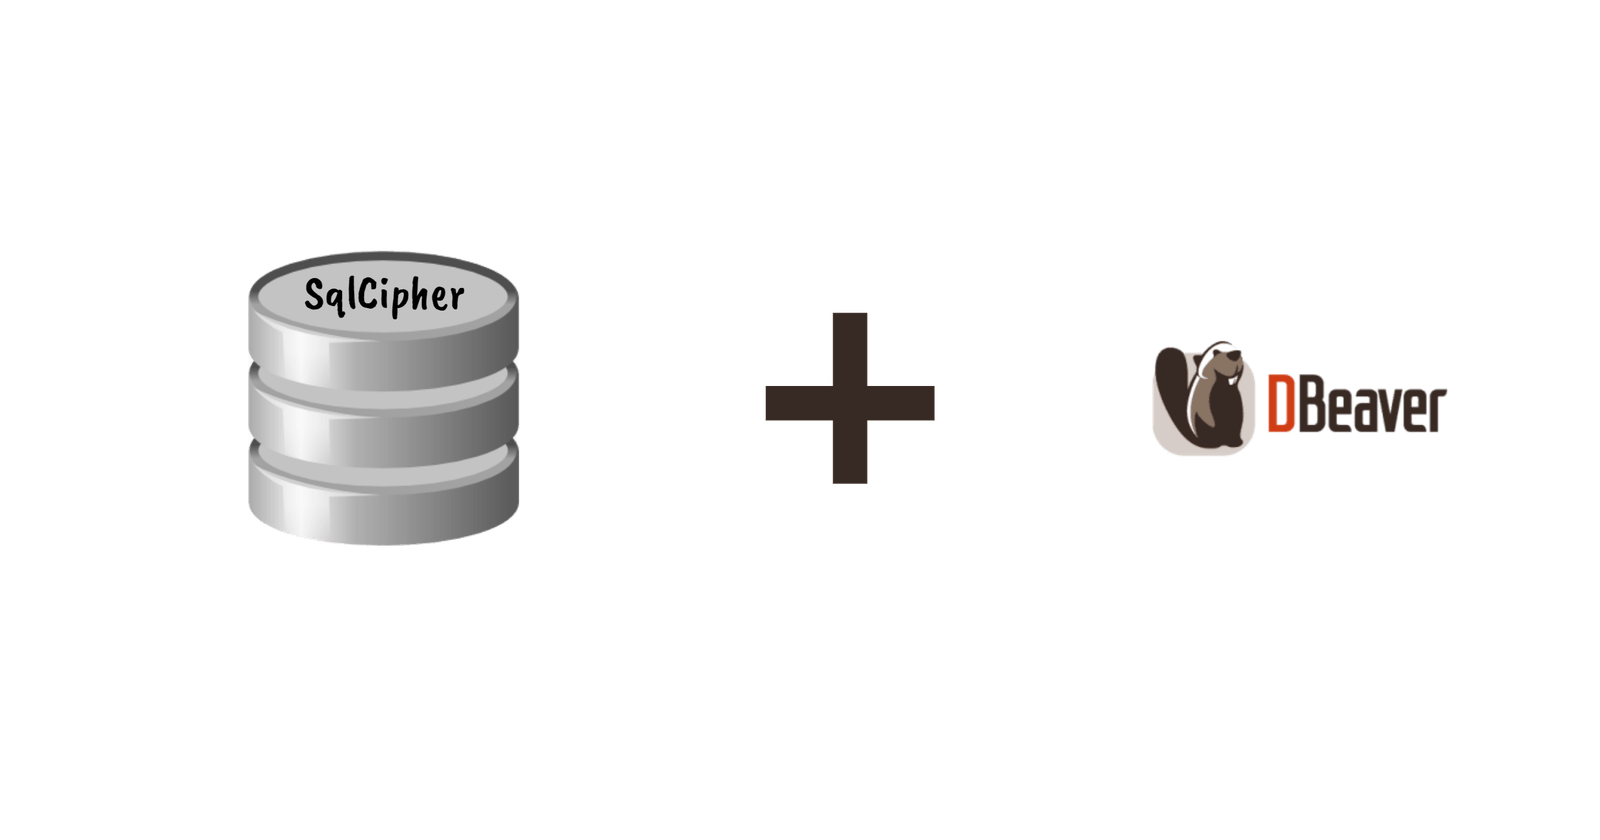 Using DBeaver To Manage SQLCipher Databases